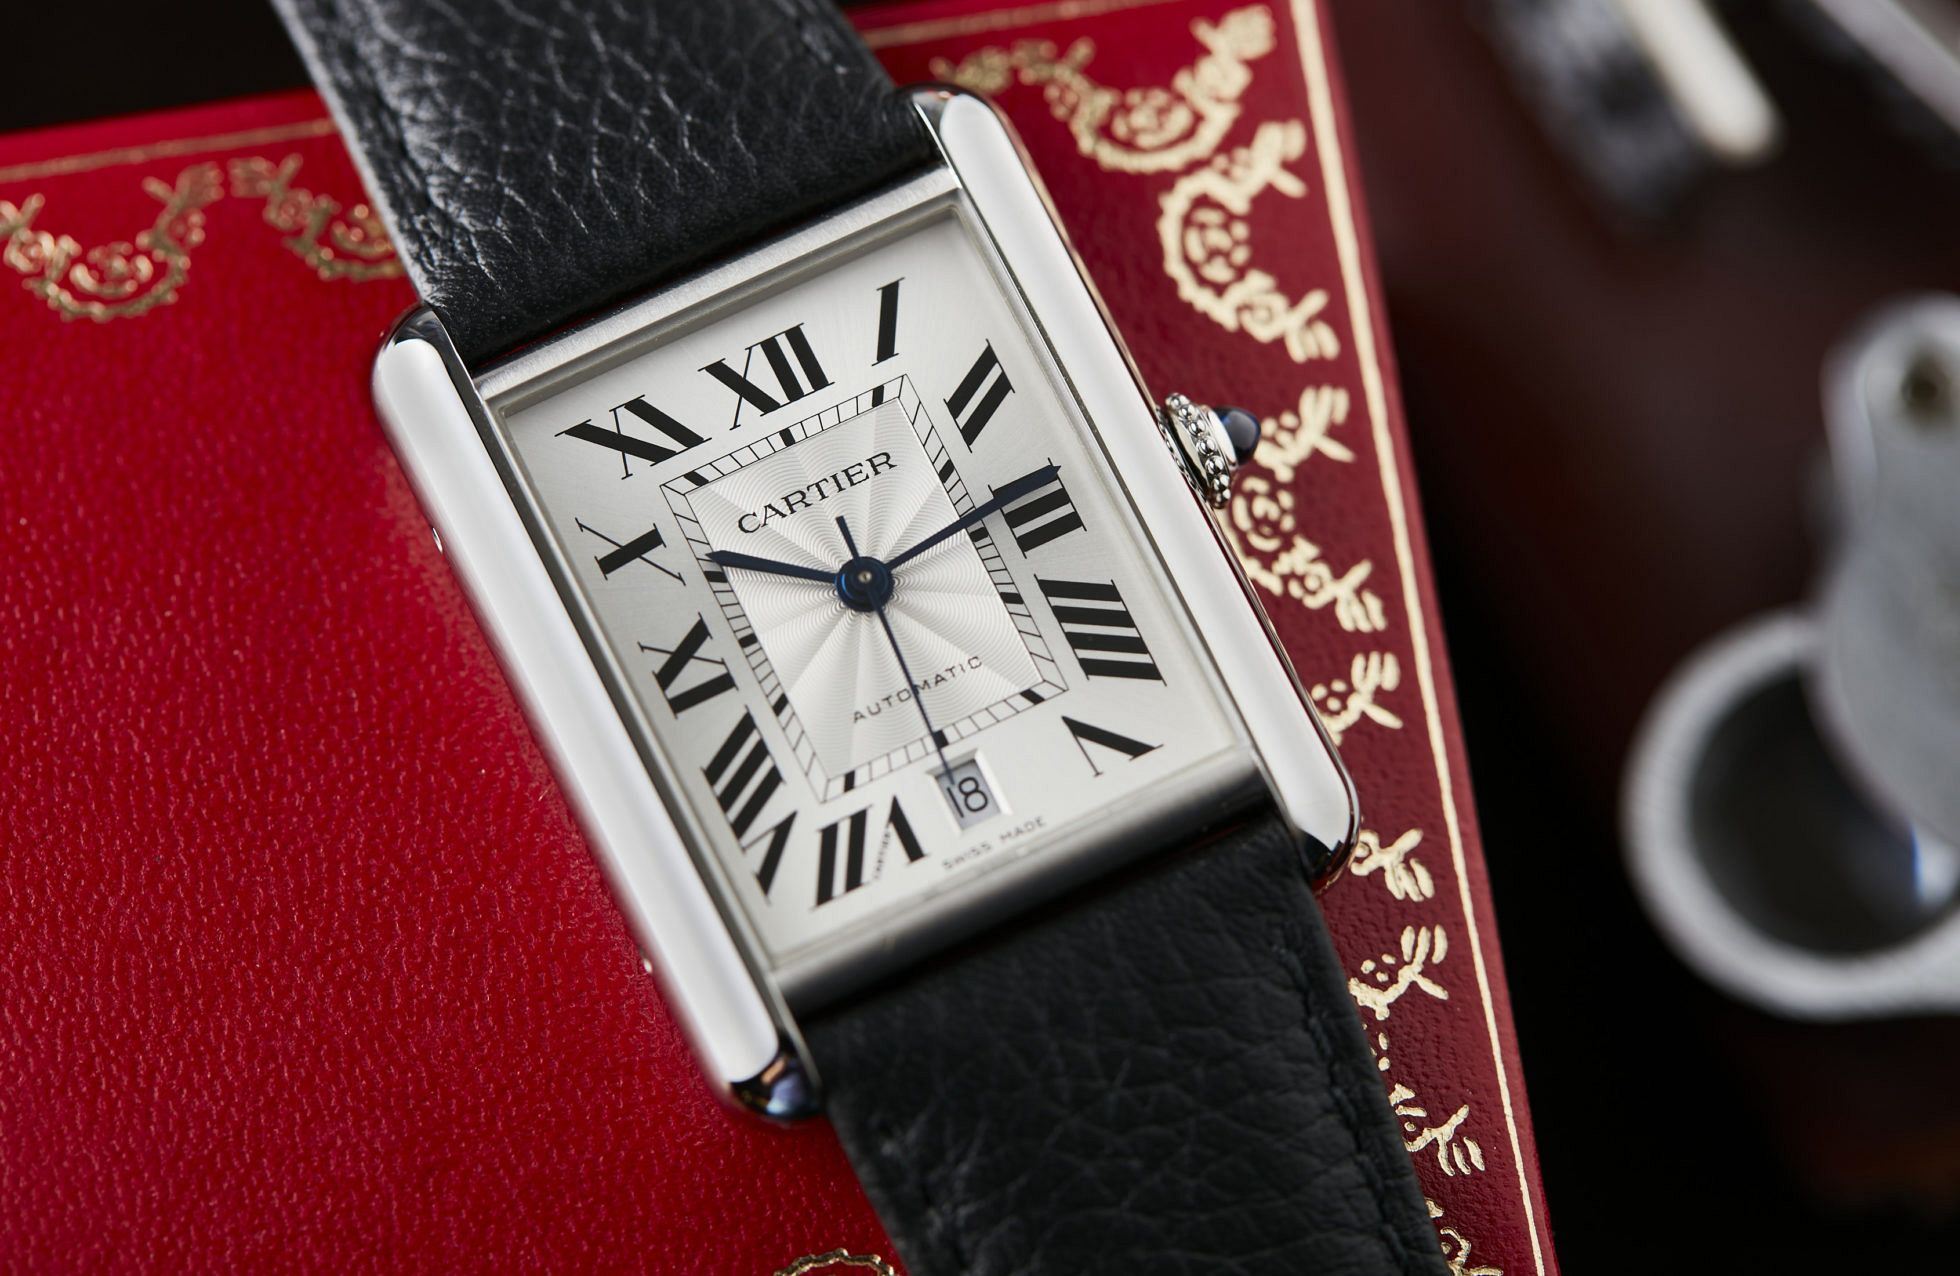 The new adventures of the Cartier Tank include a solar-powered watch